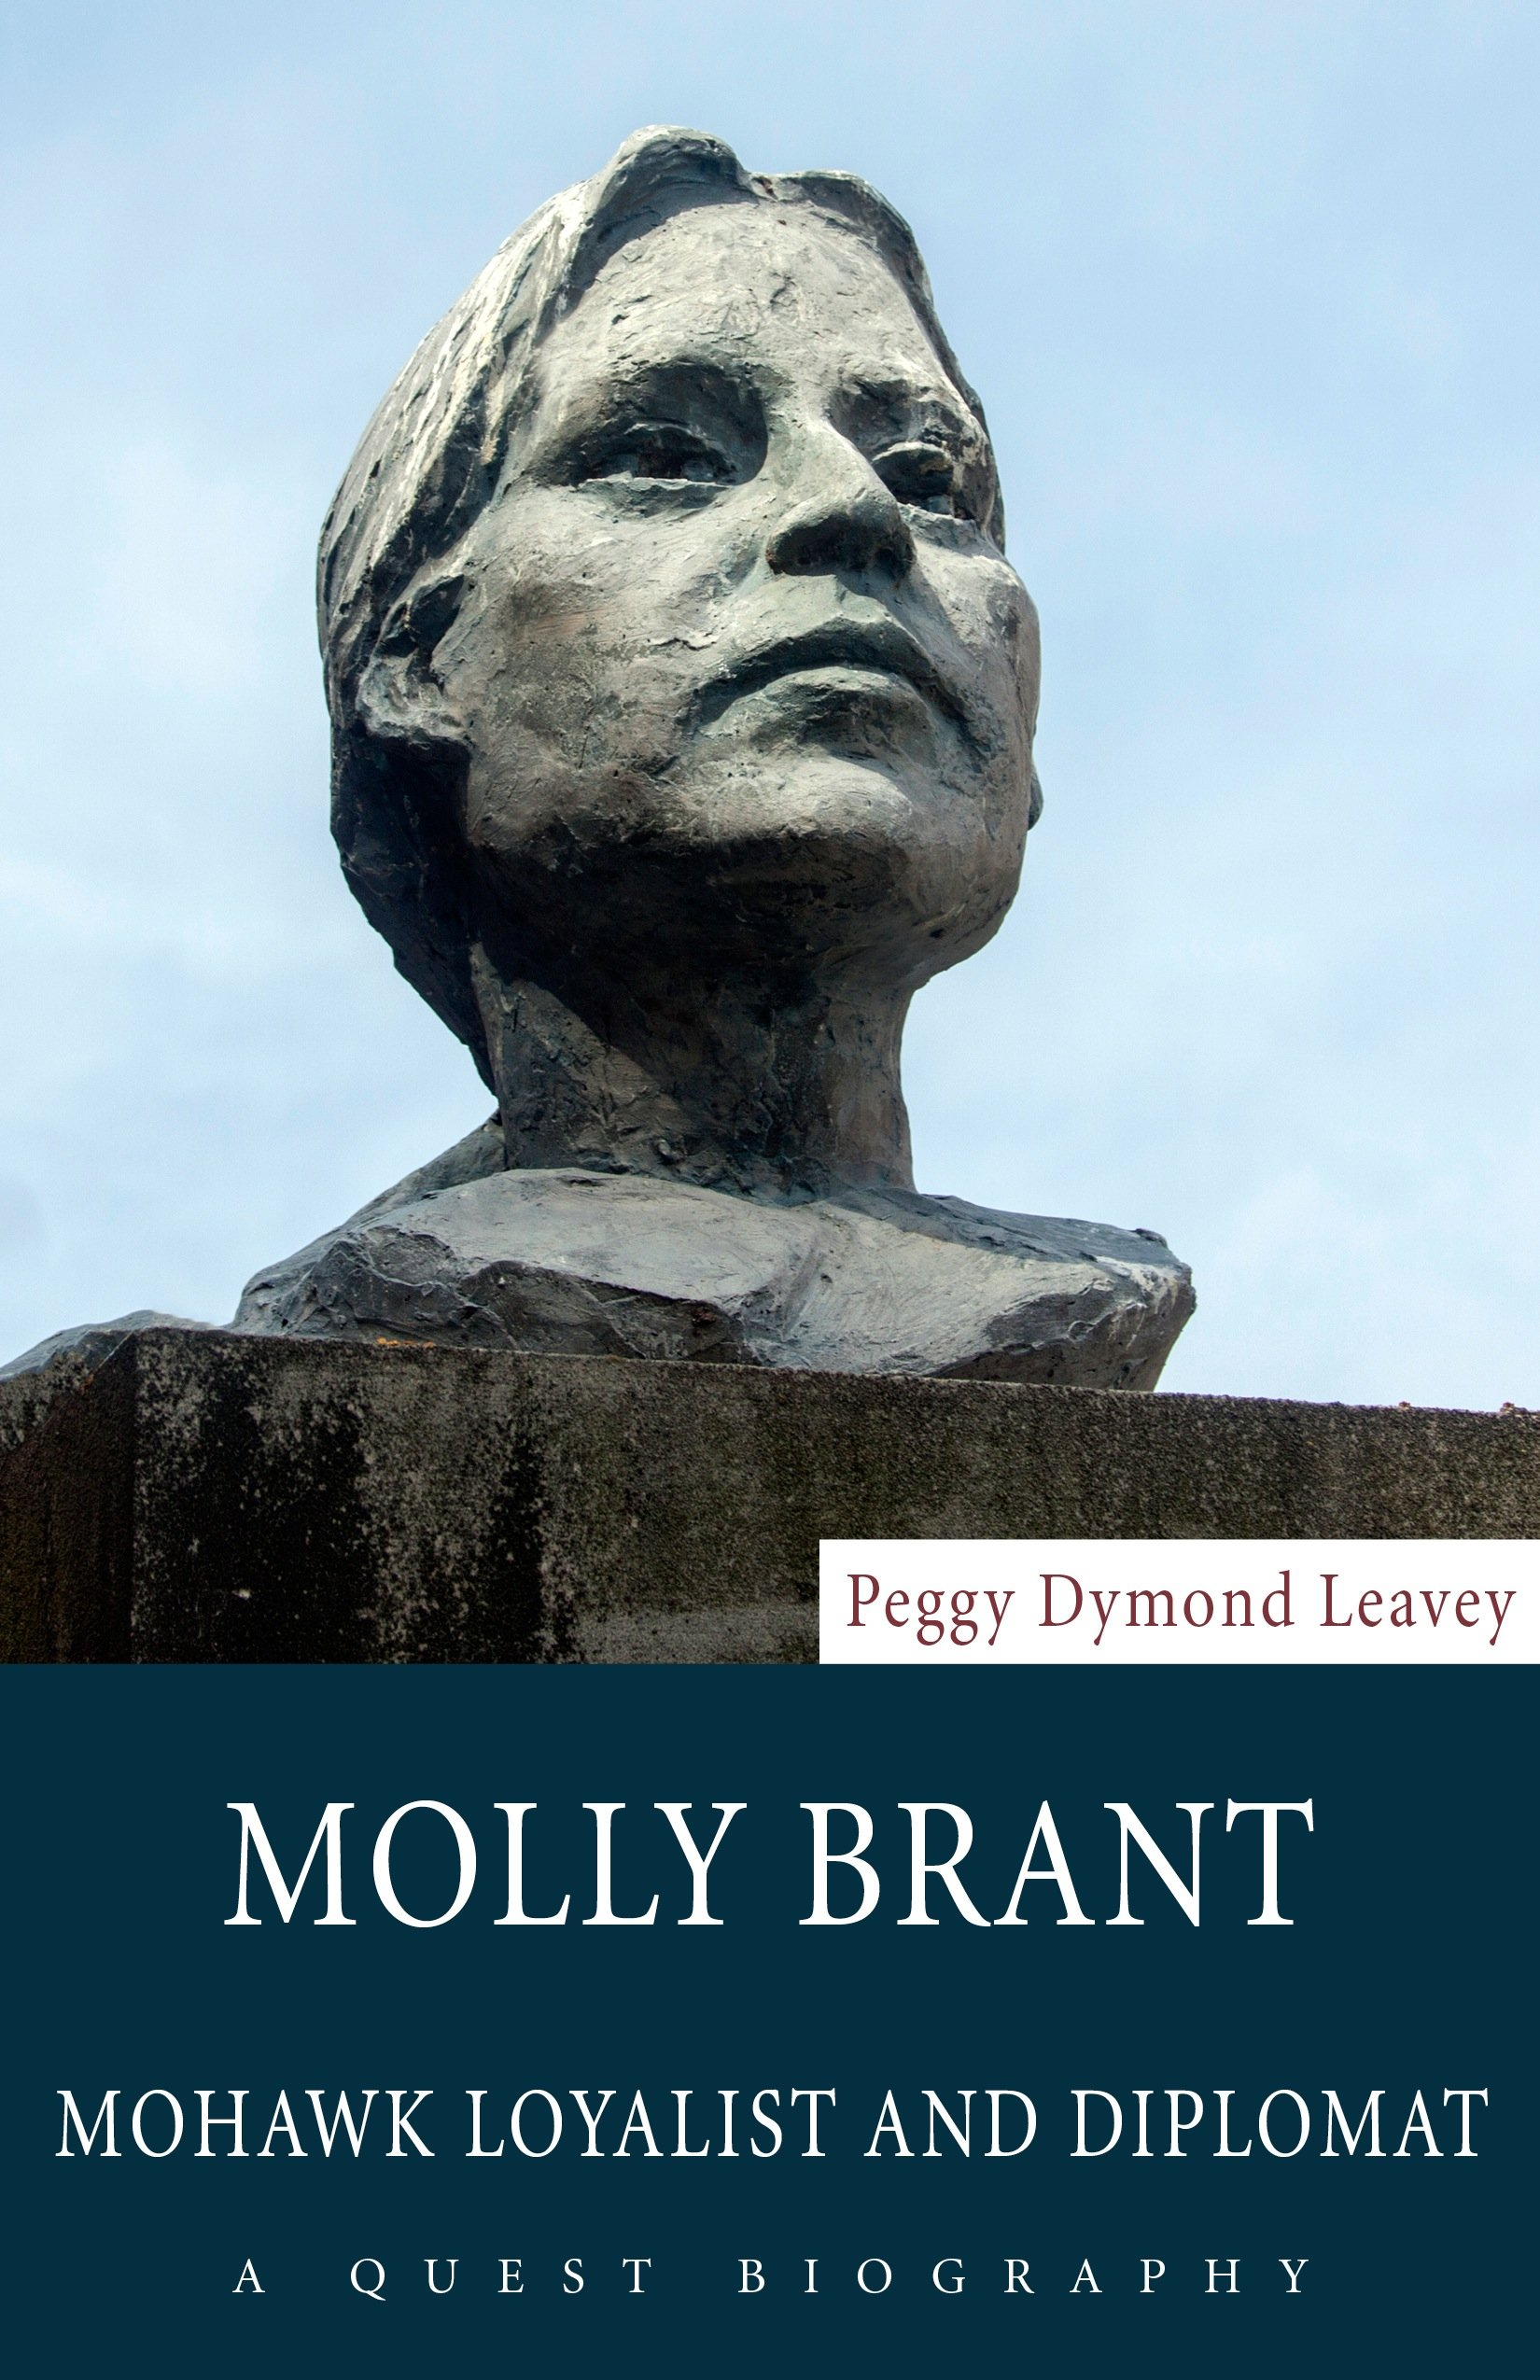 Molly Brant: Mohawk Loyalist and Diplomat (Quest Biography) ebook